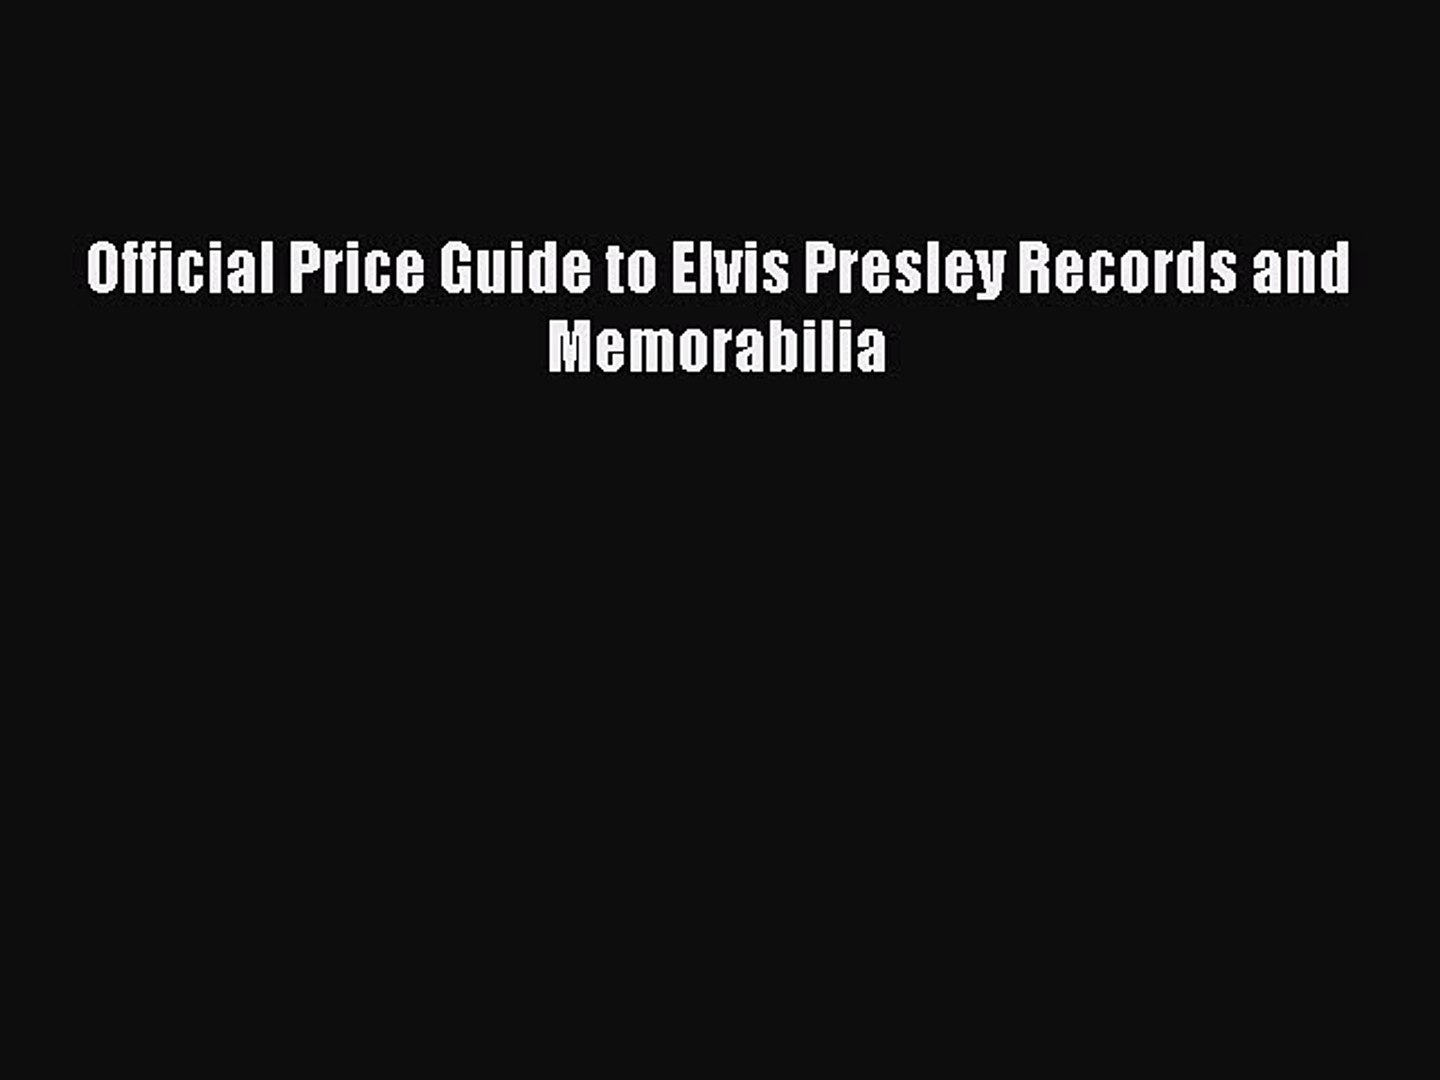 Read Official Price Guide to Elvis Presley Records and Memorabilia Ebook Free